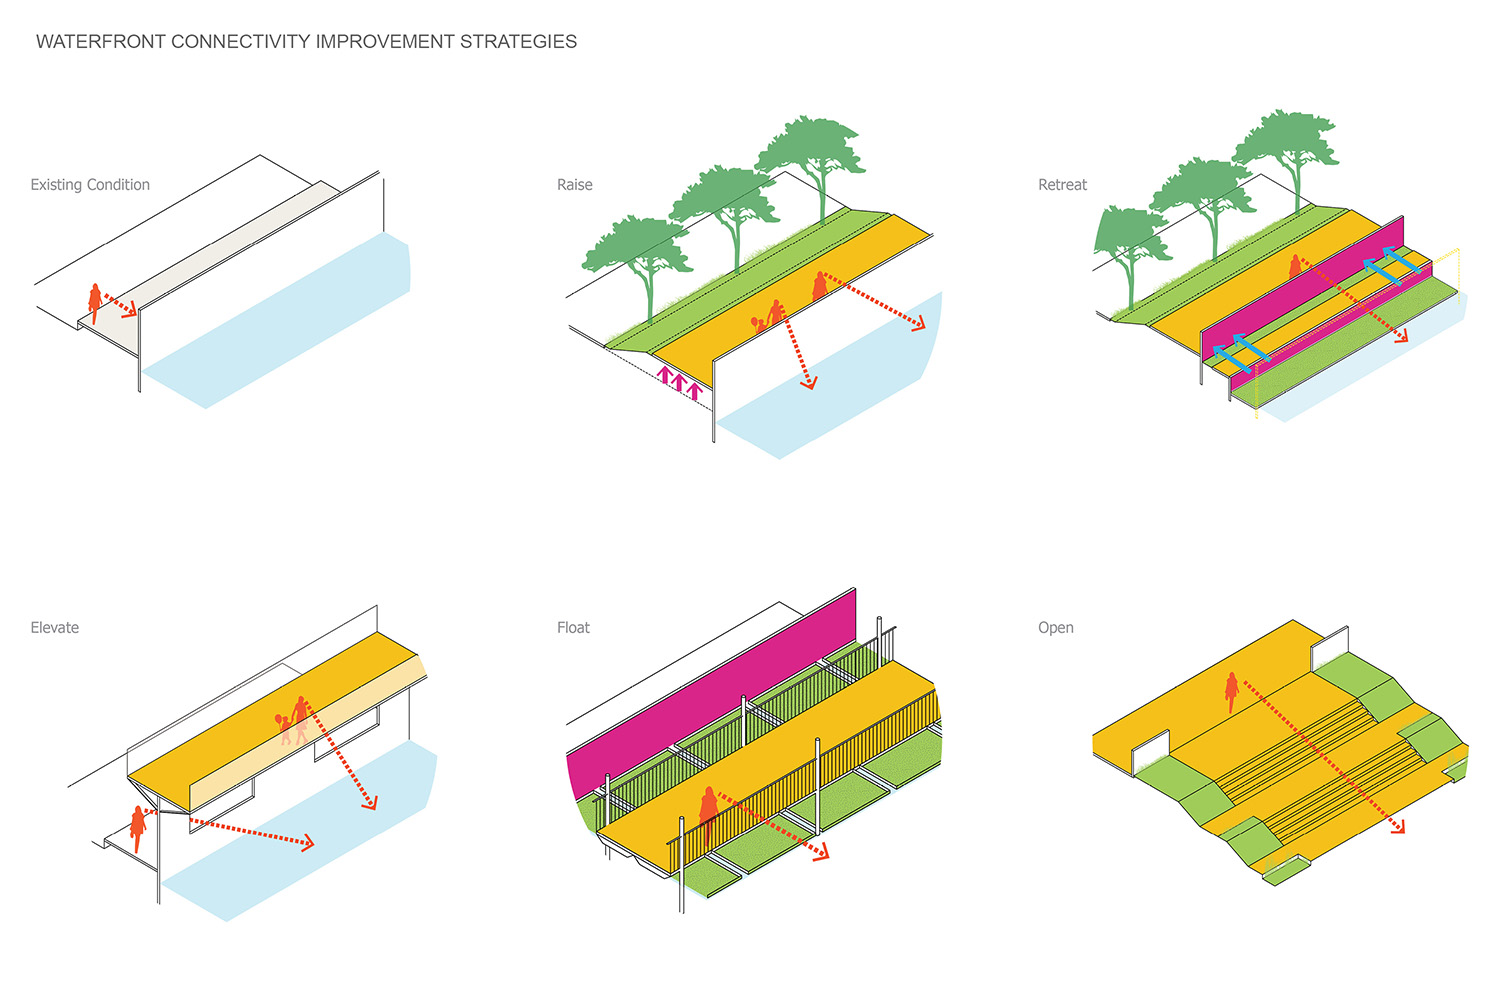 Rethinking Existing Floodwall Infrastructure: A holistic evaluation of accessibility, visual connectivity, and flood control leads to a variety of functional yet elegant solutions to address the creek's co }